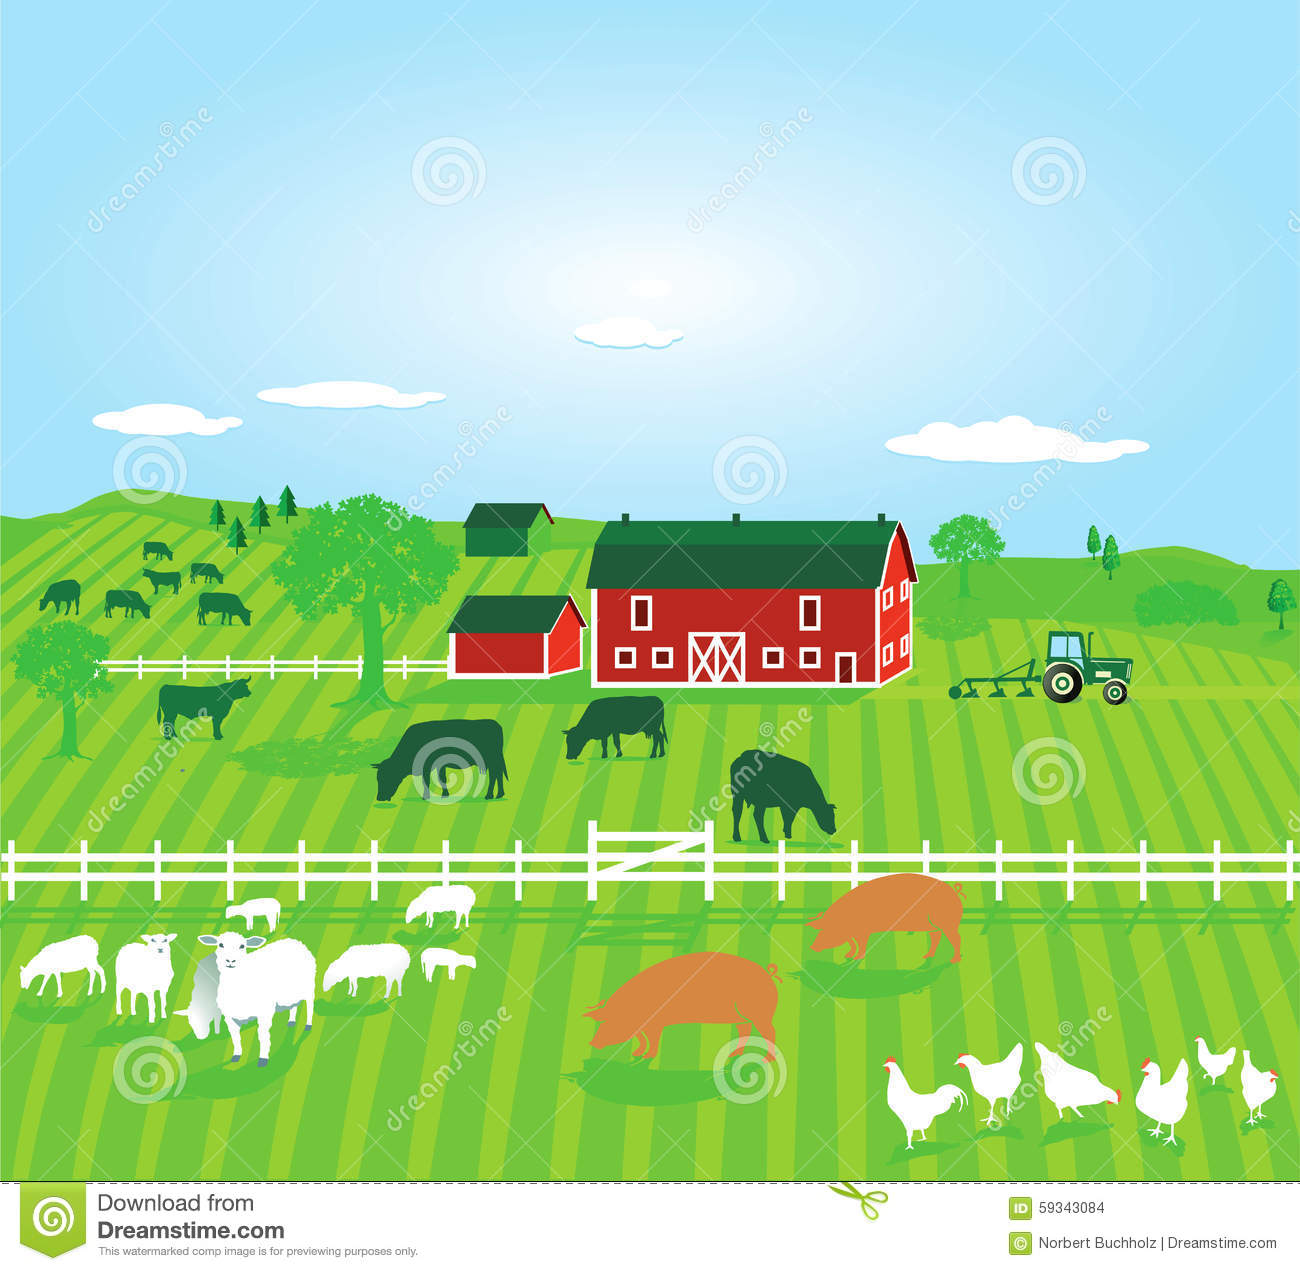 Farm Fence Clipart farm field with animals clipart image gallery - hcpr